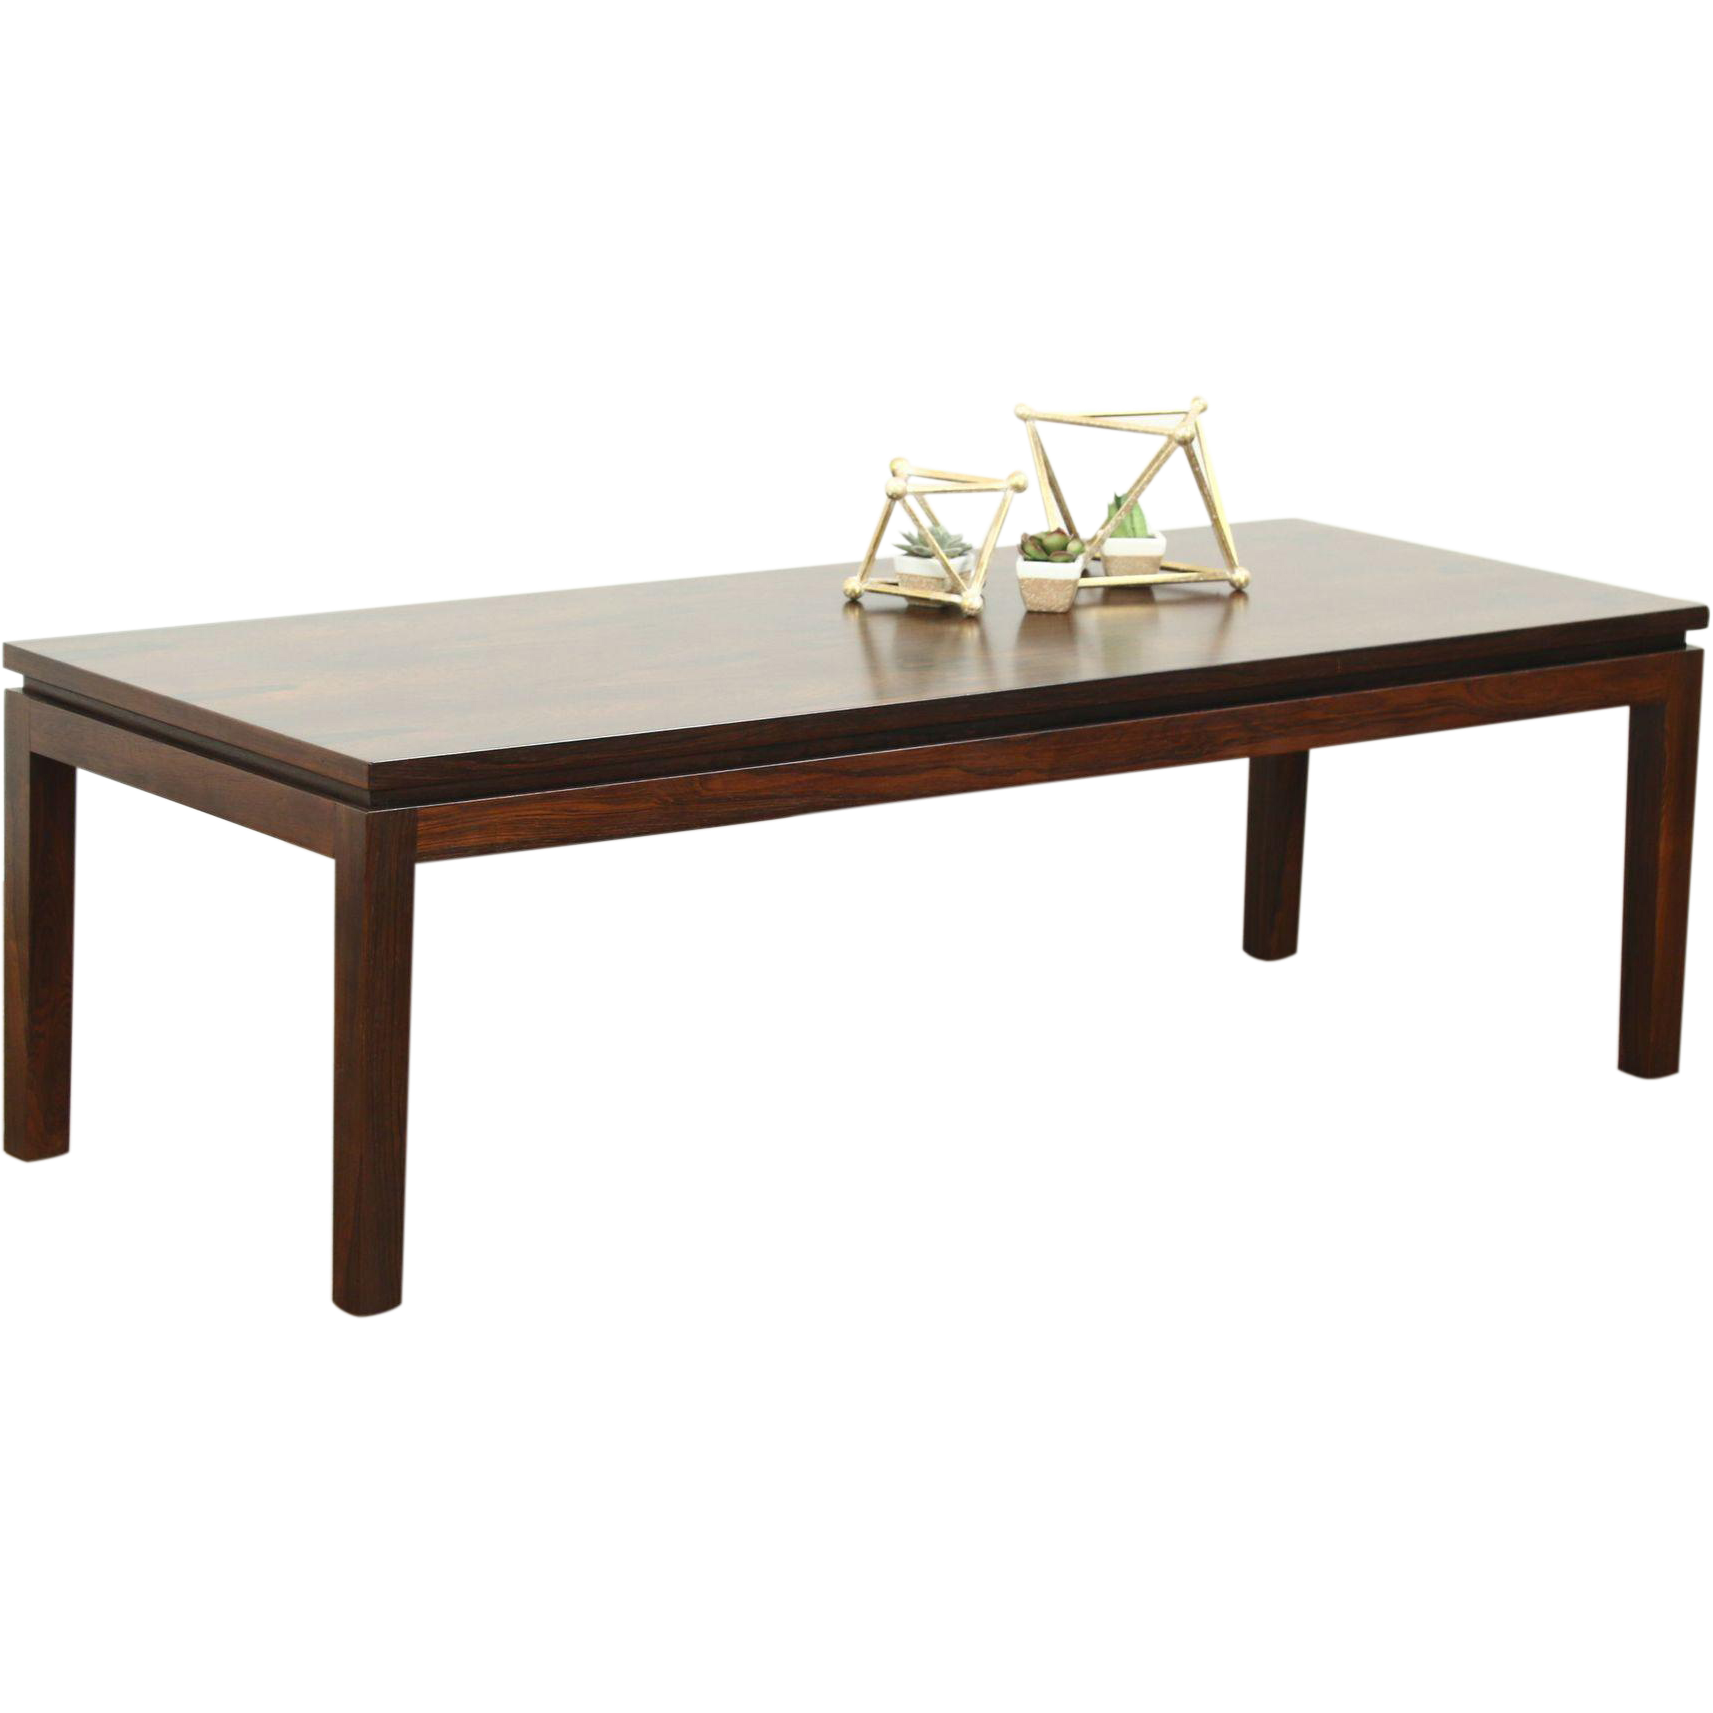 Midcentury Danish Modern 1960 39 S Vintage Rosewood Coffee Table From Harpgallery On Ruby Lane